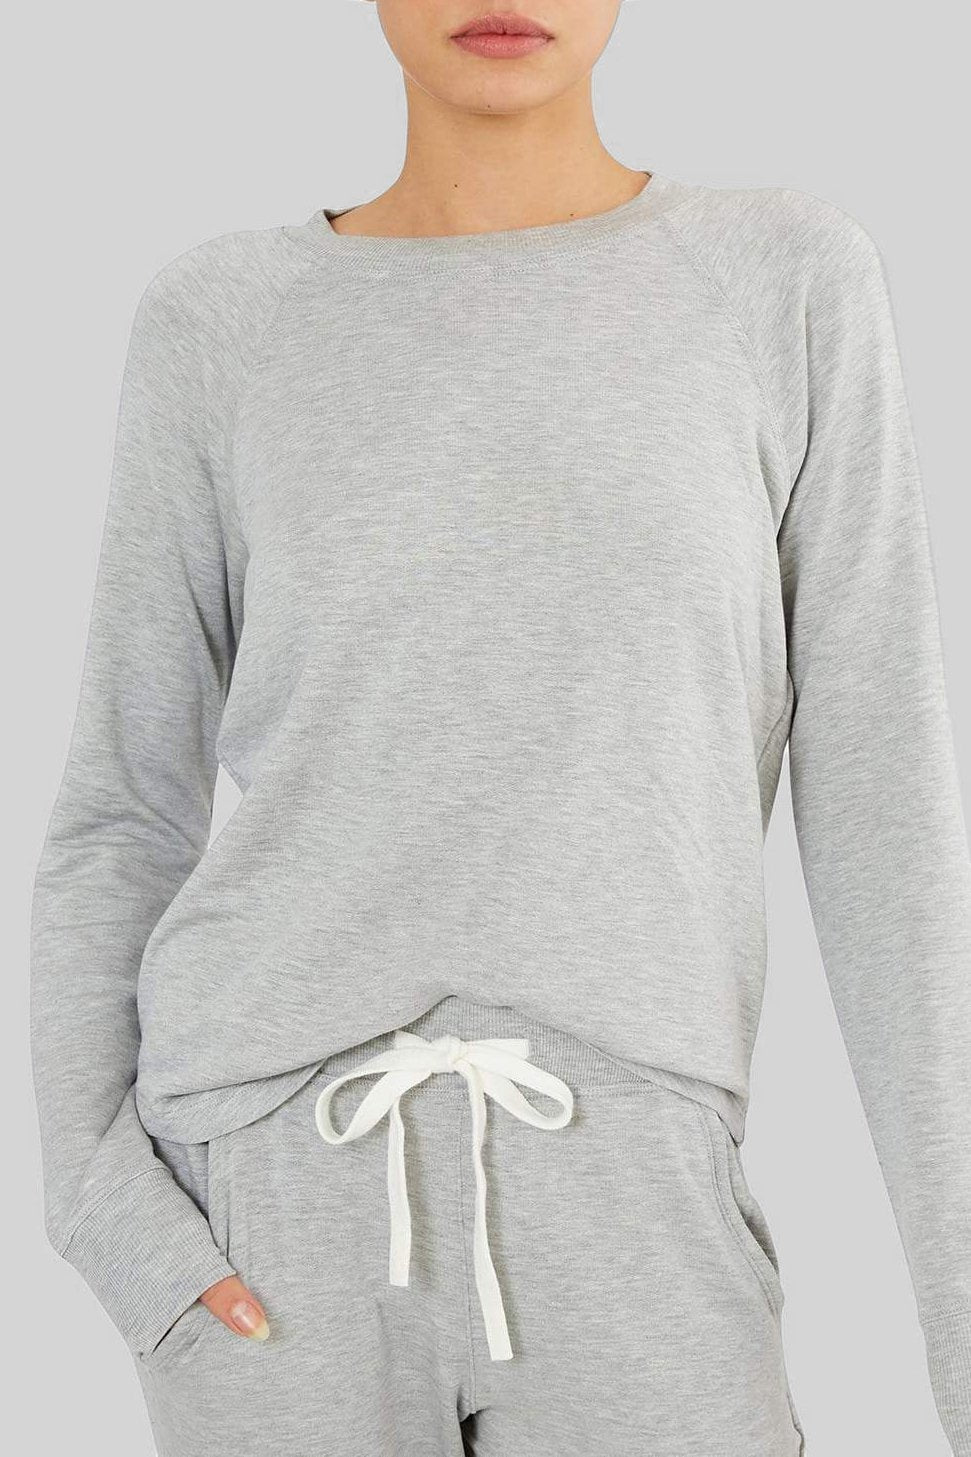 Warm Up Pullover Sweatshirt